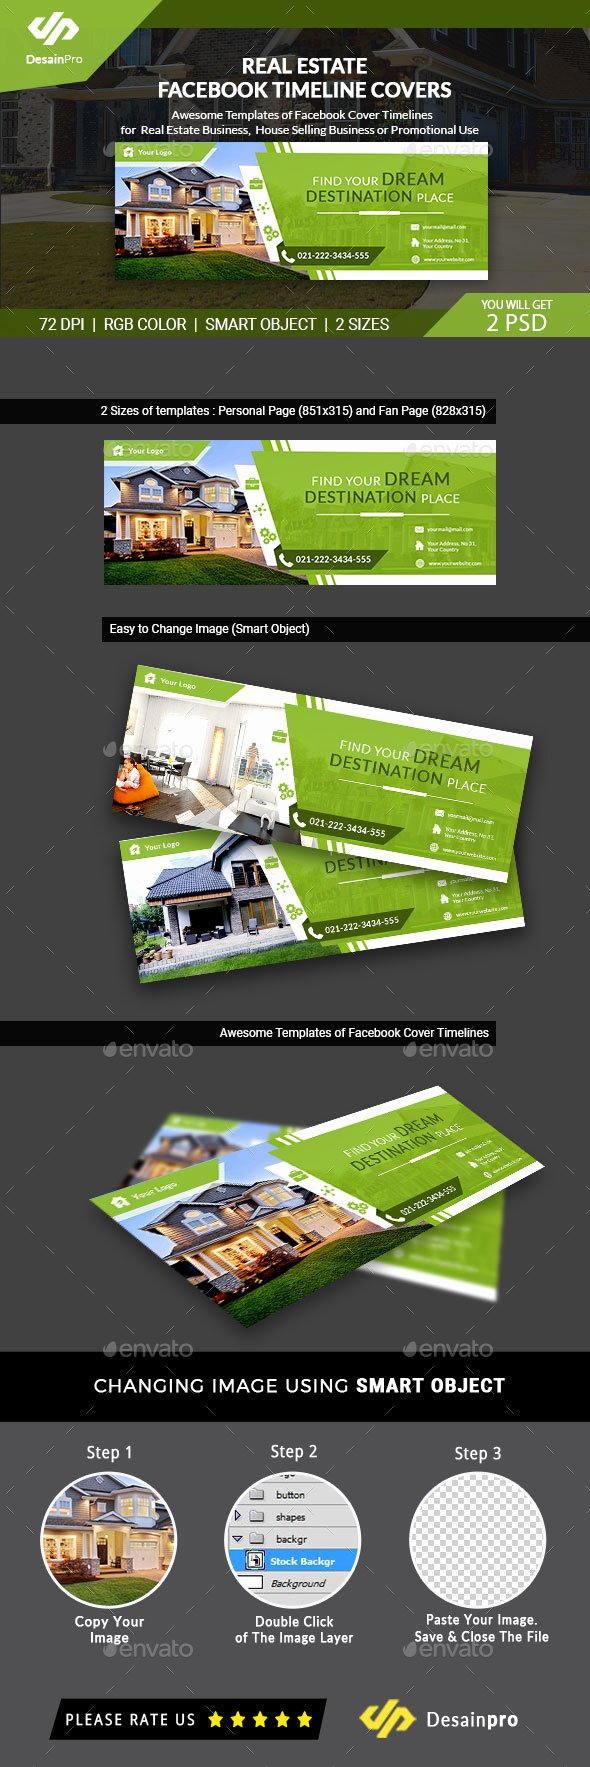 Real Estate Timeline Template Inspirational Page 3 Estate Dondrup